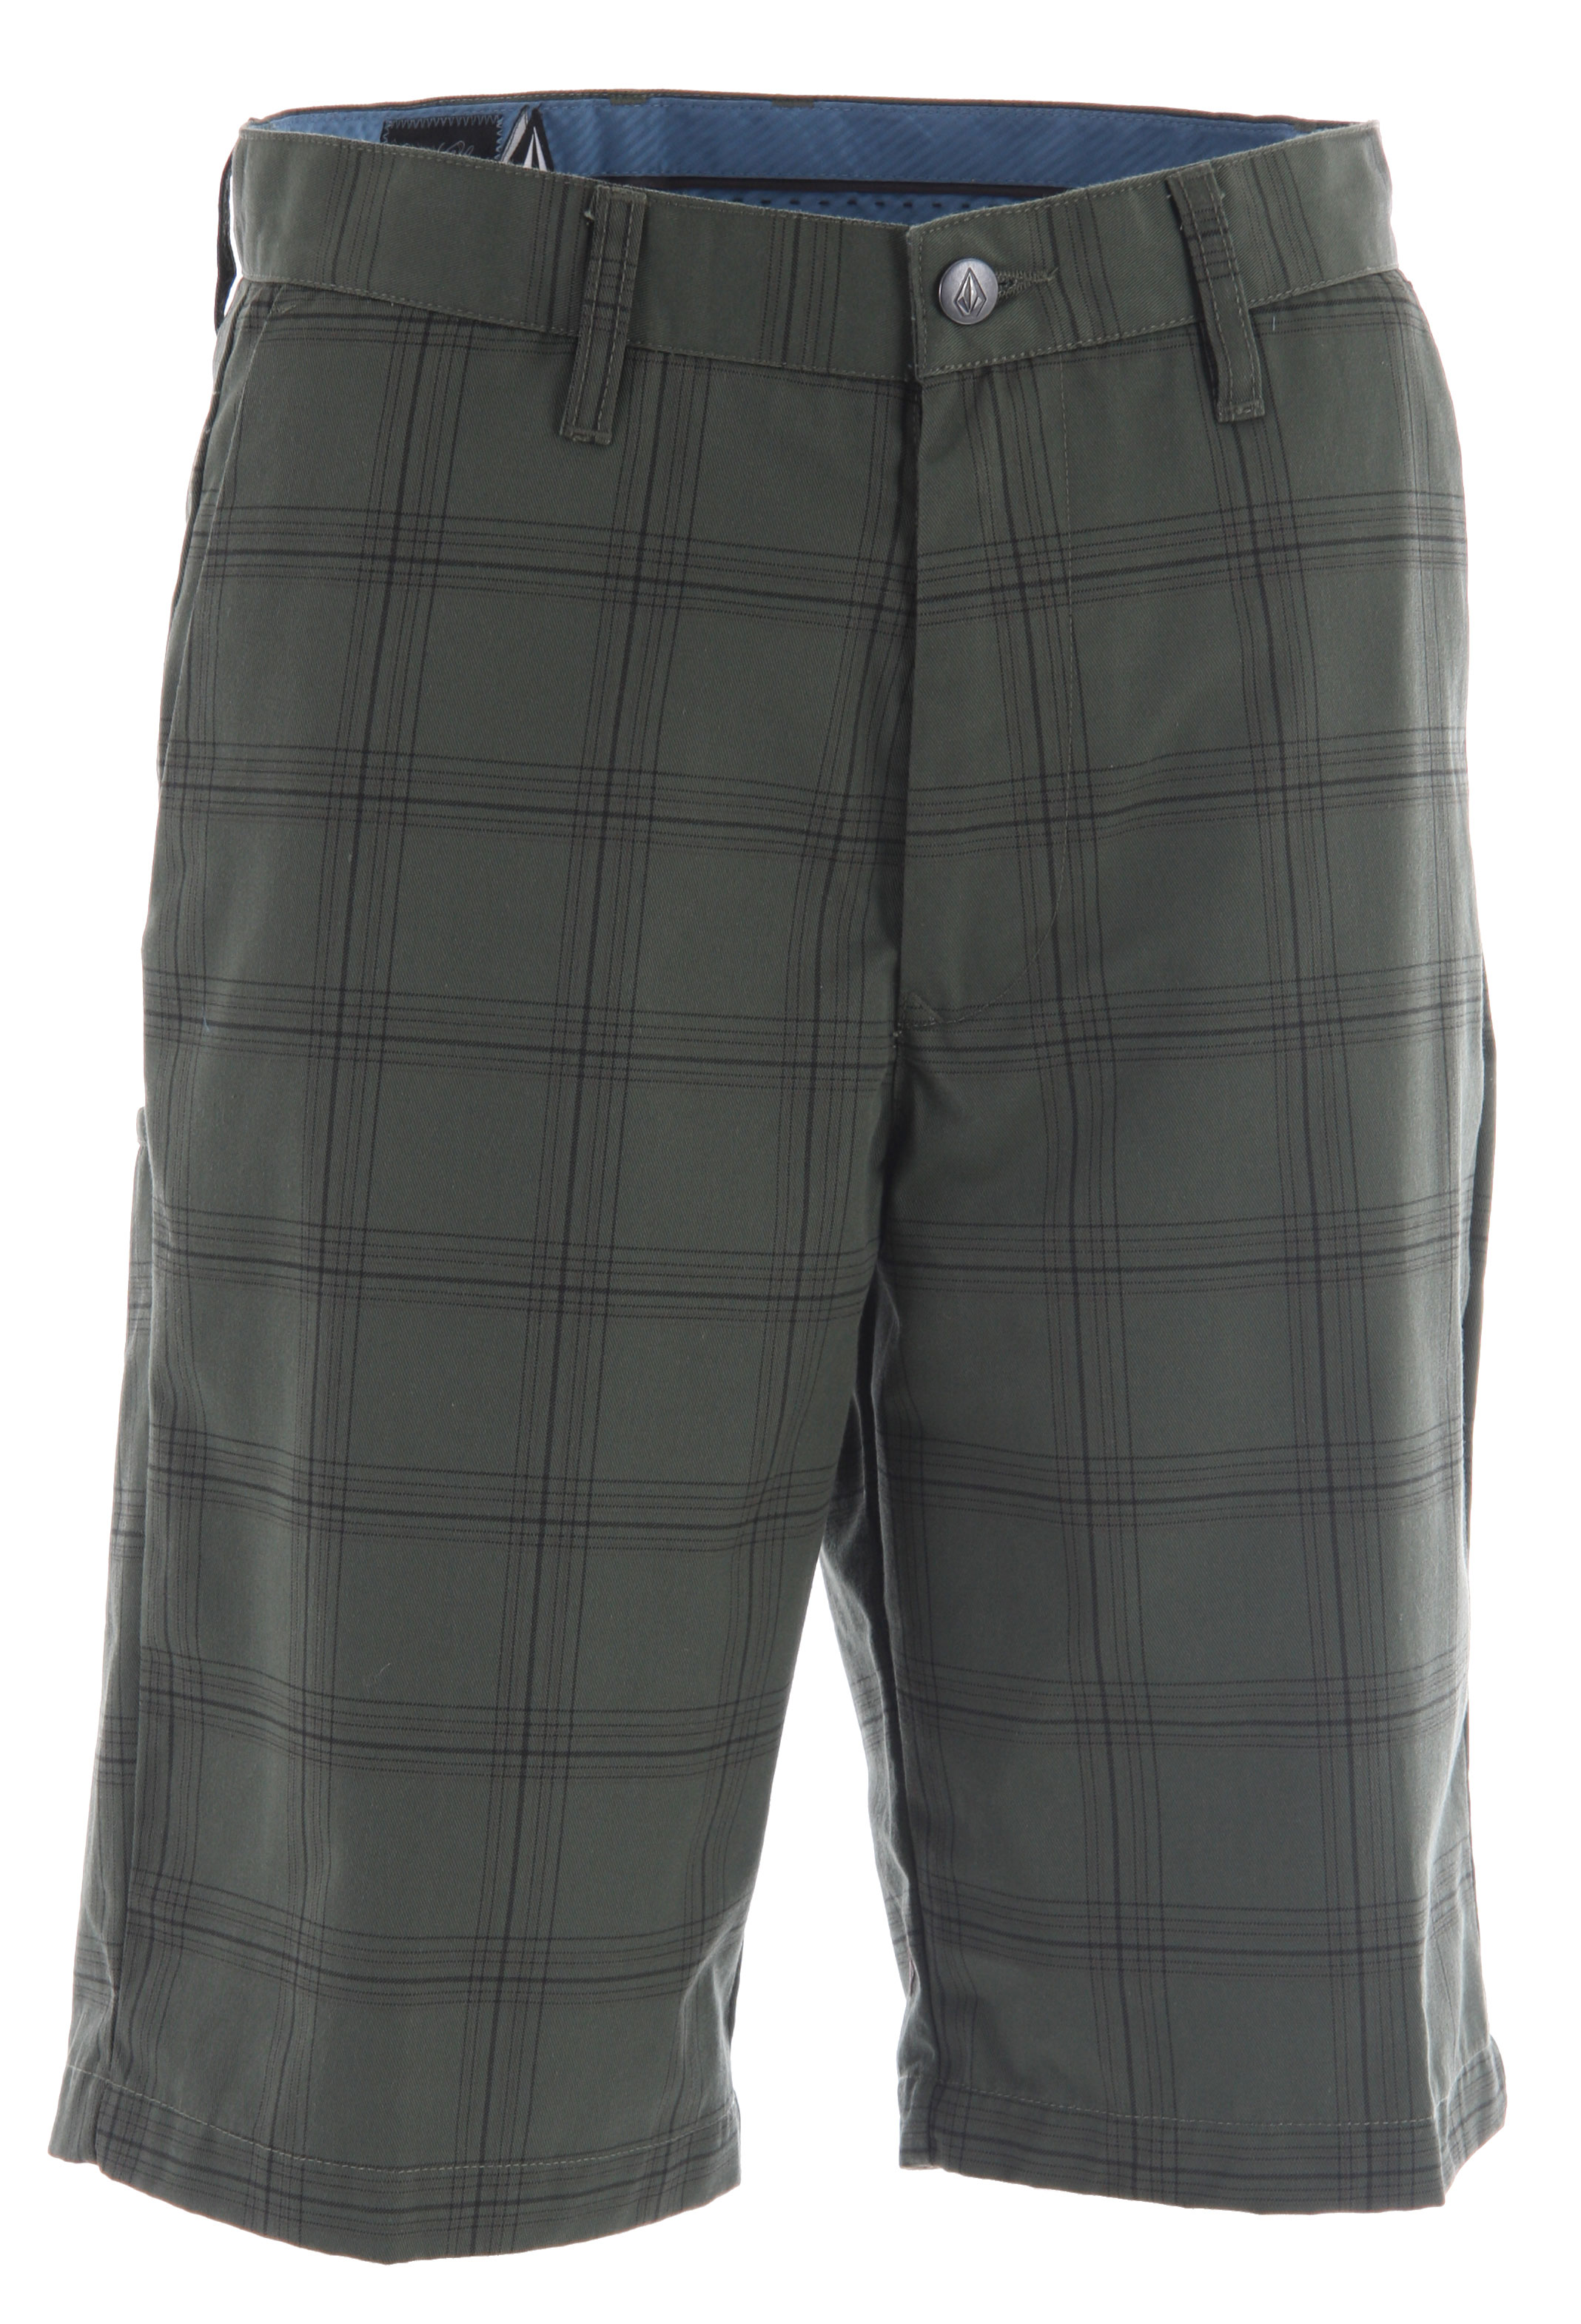 "Surf Volcom's essential skate chino gets infused with preppy plaid for an interesting mix in contradictions with the Volcom Frickin Plaid Chino Shorts. Stellar details include front slash pockets, back welt pockets, cell welt pocket at back leg, and is finished with a garment wash for added softness.Key Features of the Volcom Frickin Plaid Chino Shorts: 22"" Outseam Relaxed Fit Chino Short Garment Wash W/ Softener Corpo Class Collection 65% Polyester/35% Cotton Twill. - $28.95"